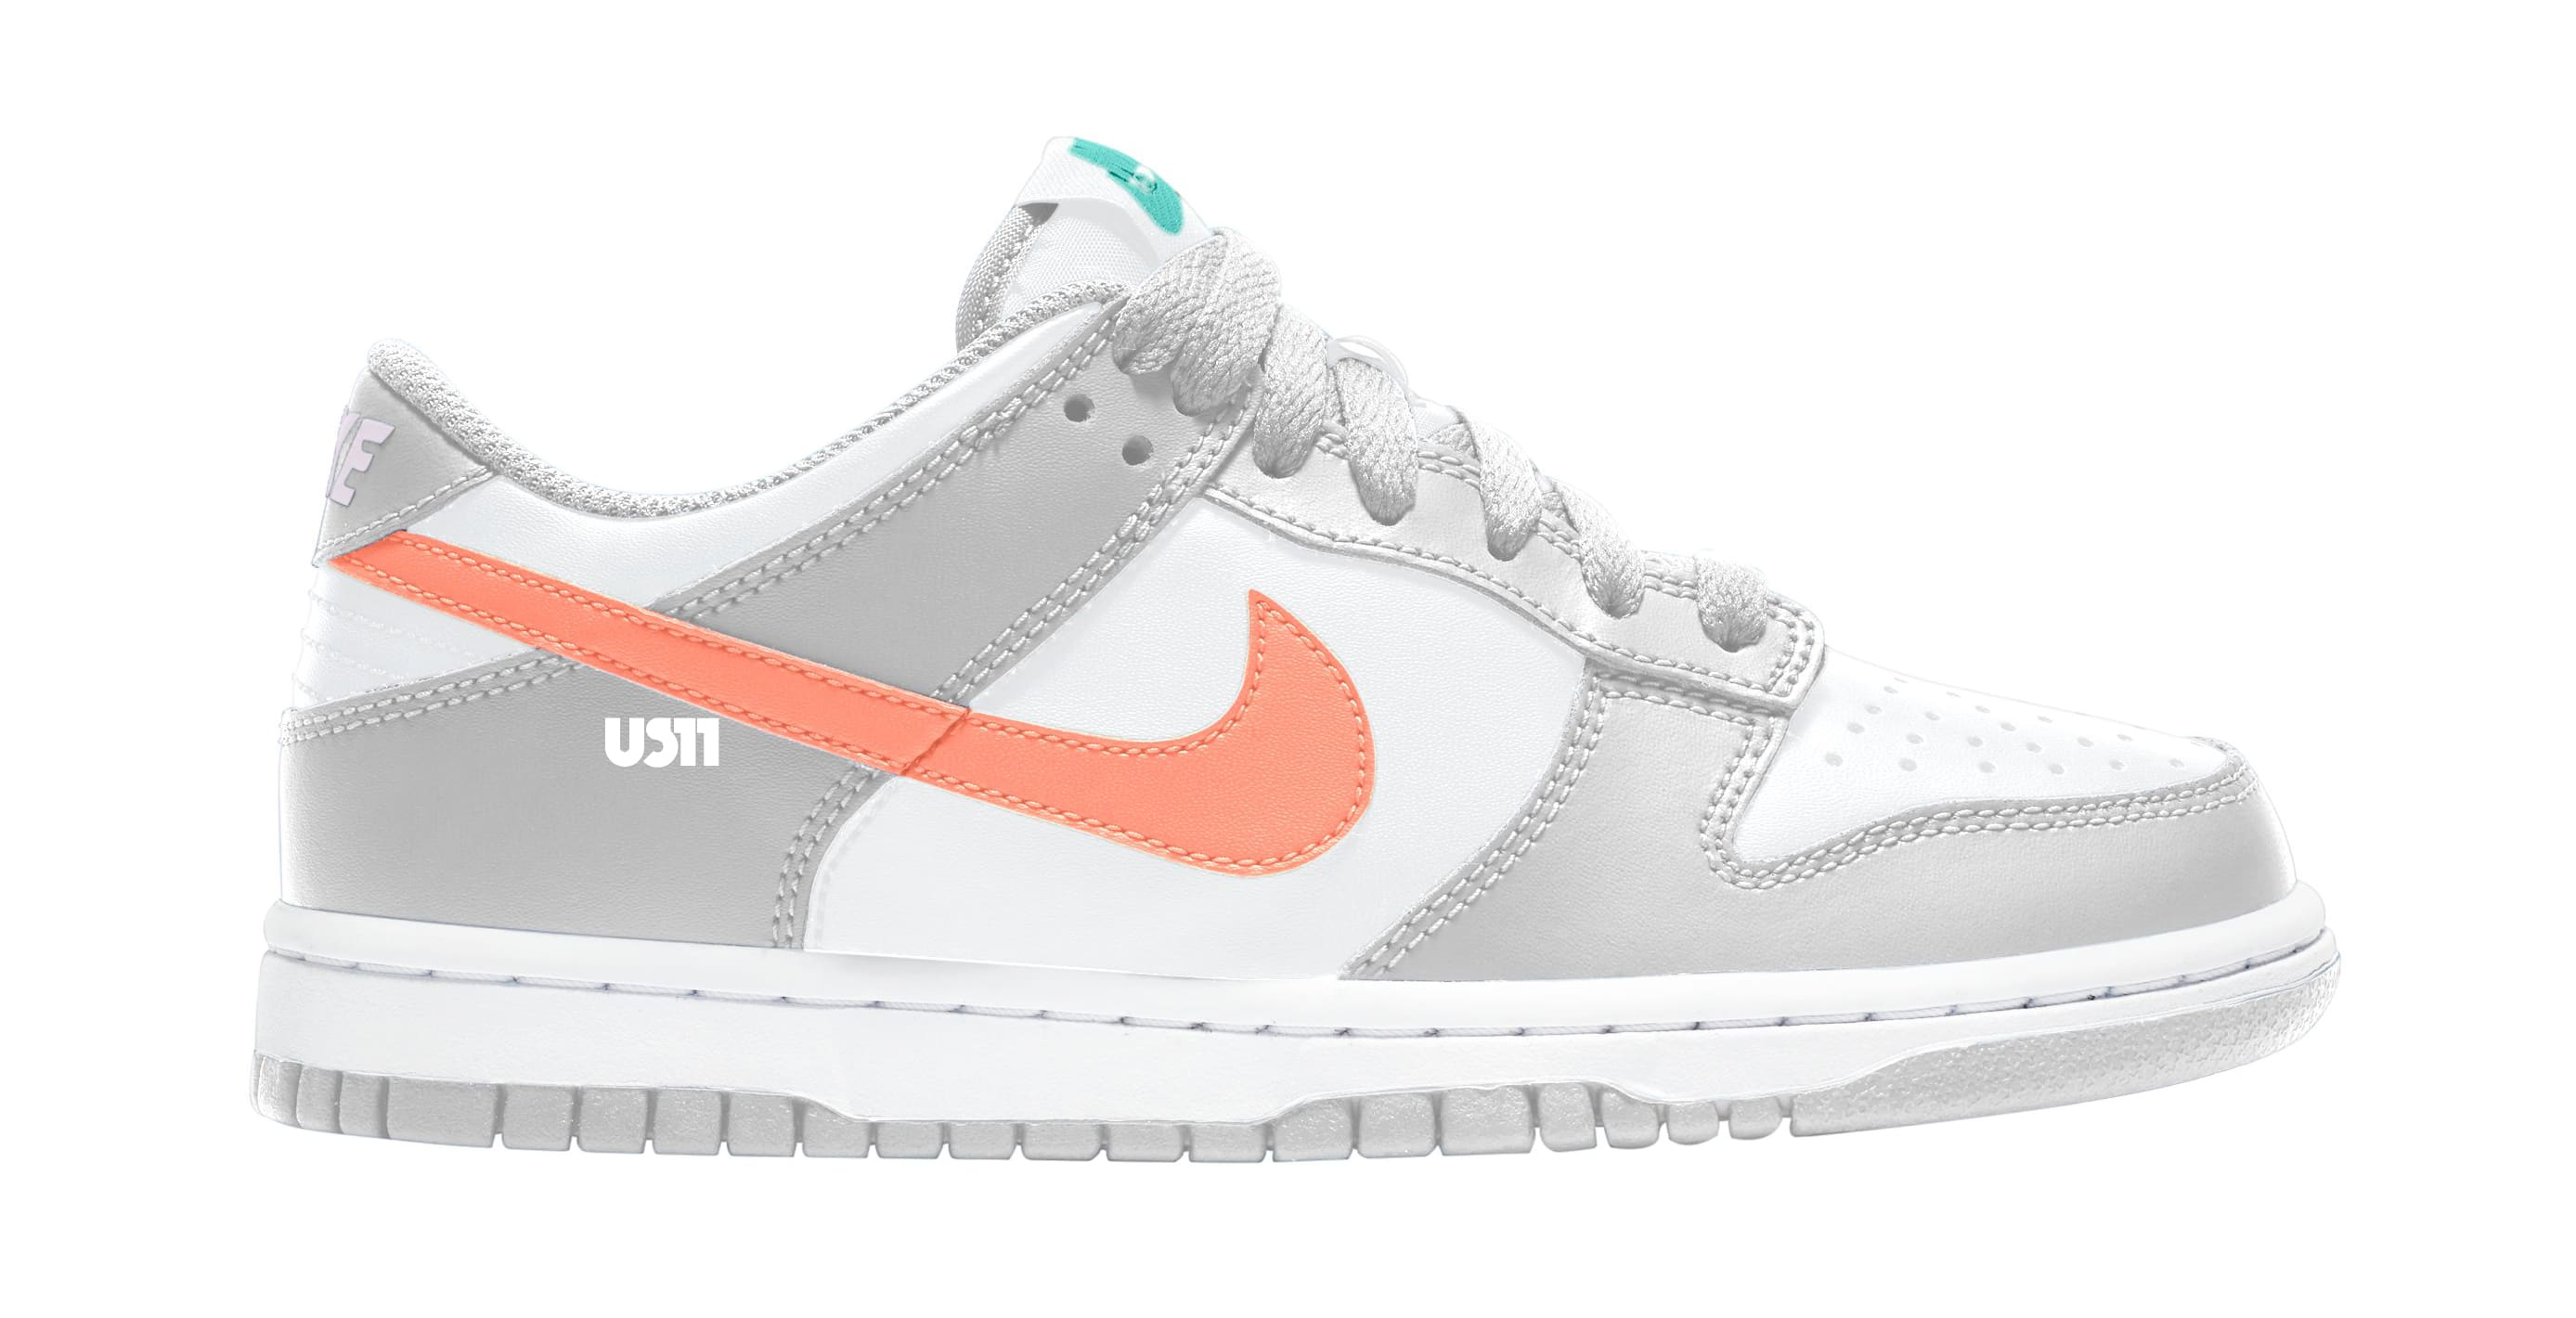 Nike Dunk Low GS White/Grey/Orange Lateral